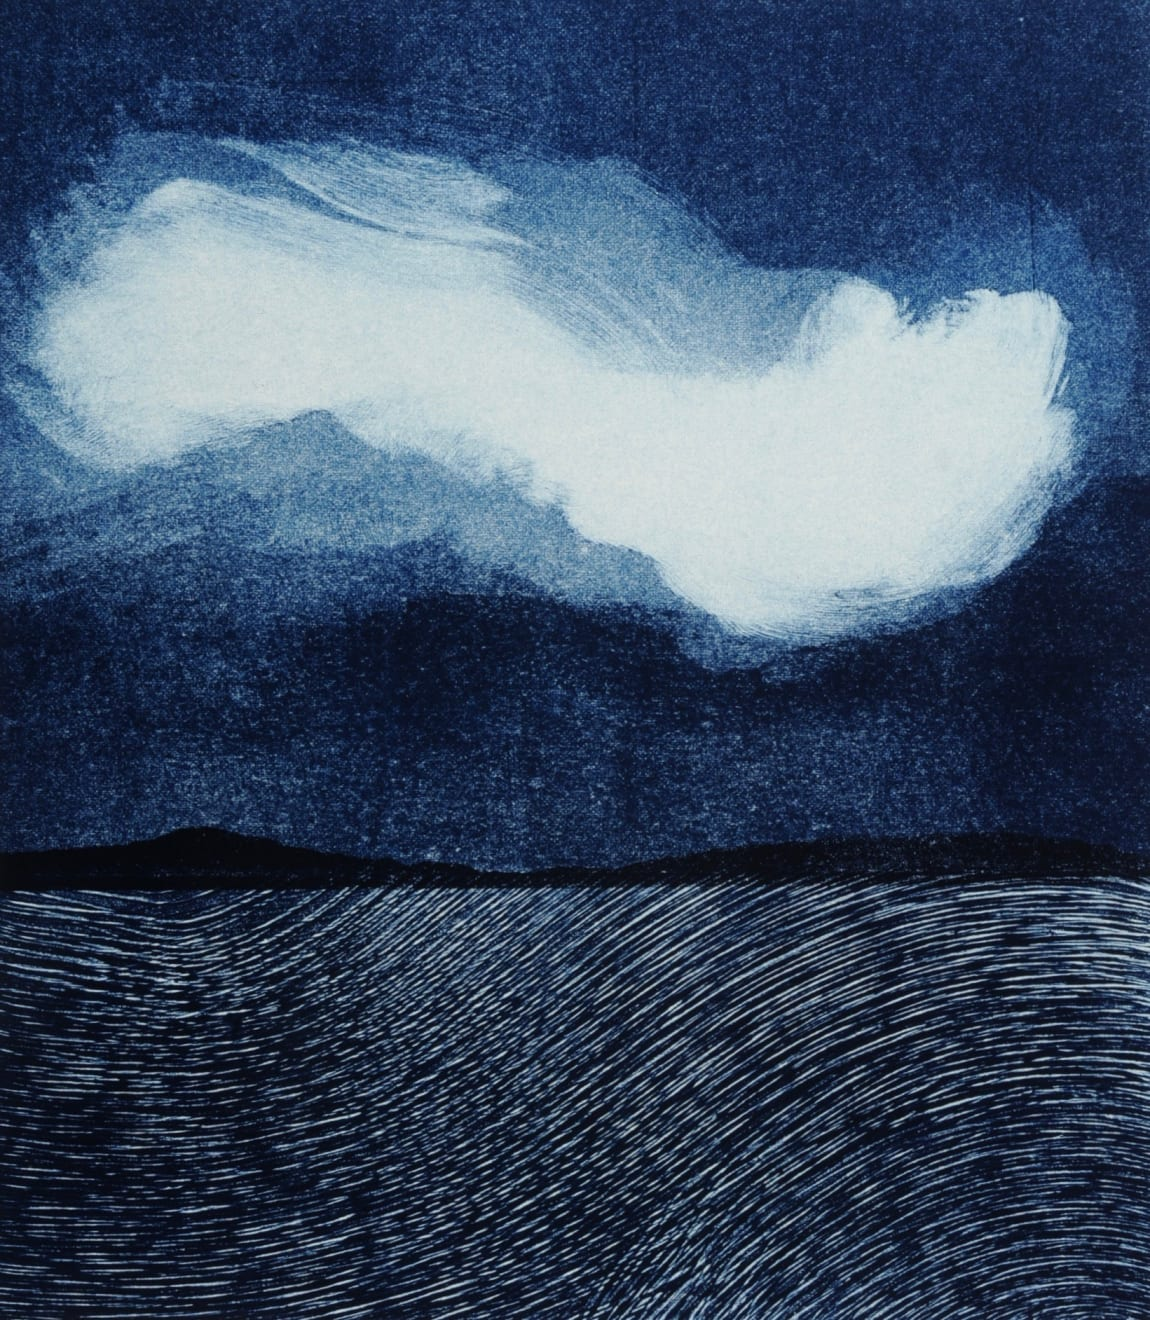 Nigel Swift, Night Sea, 2020